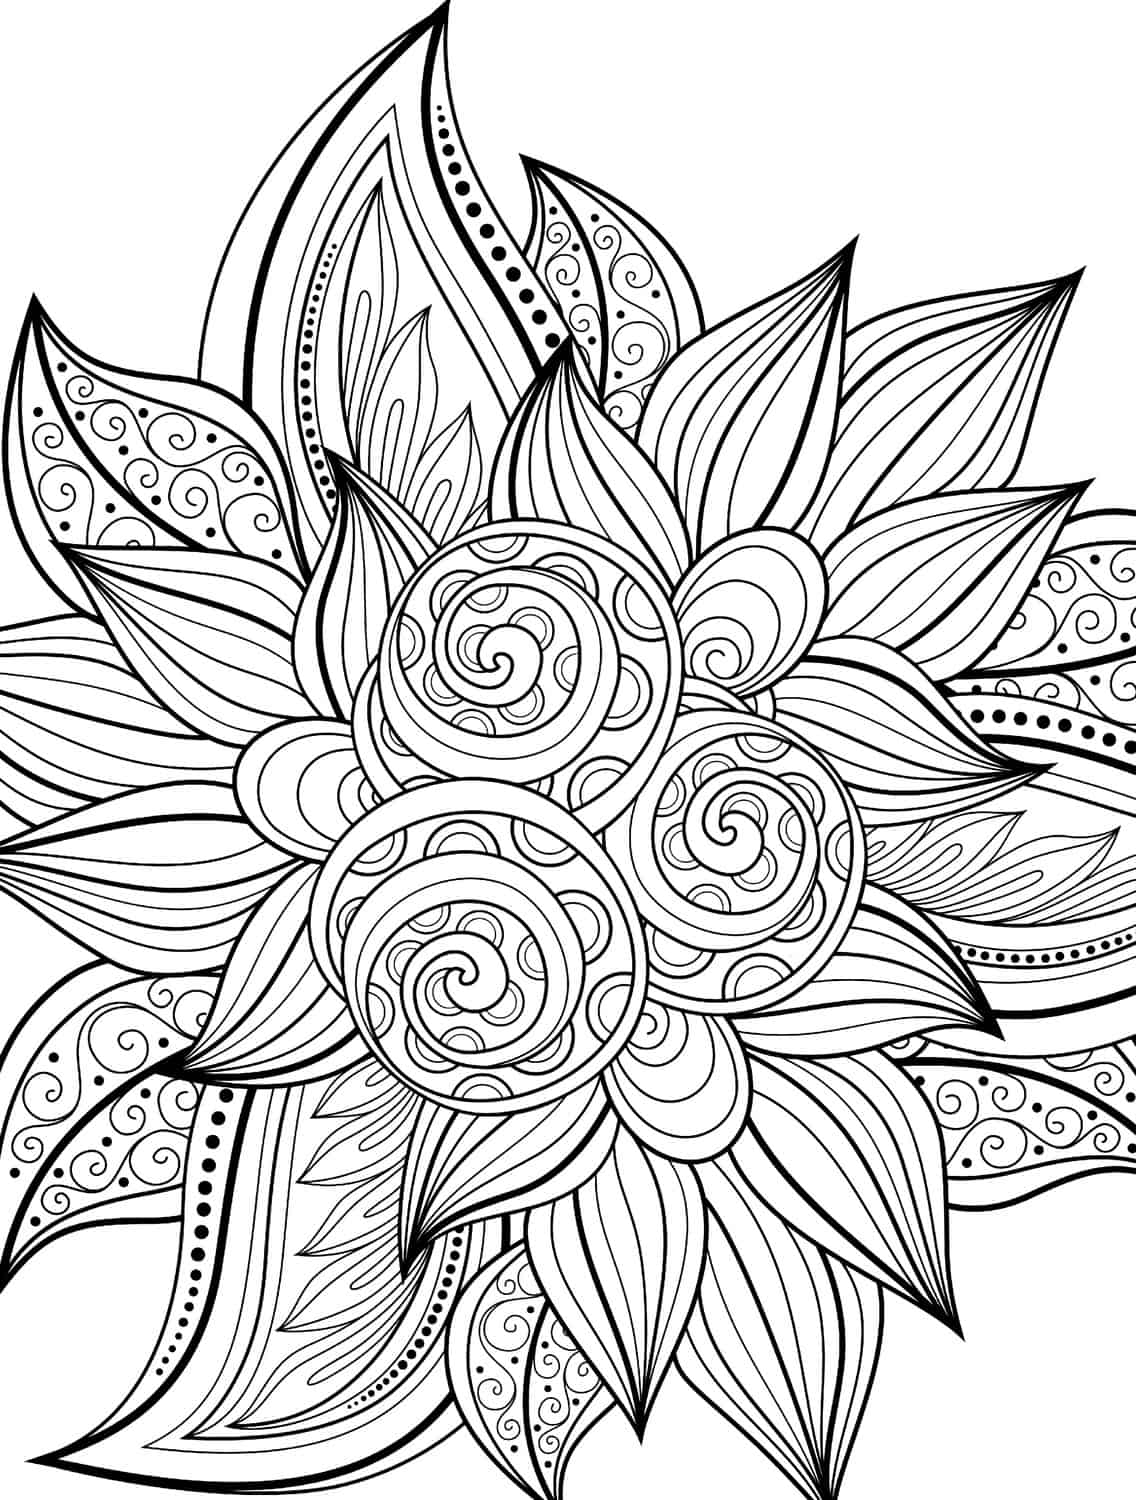 download the jpeg here and the pdf here pretty holiday free printable coloring pages small - Easy Printable Coloring Pages